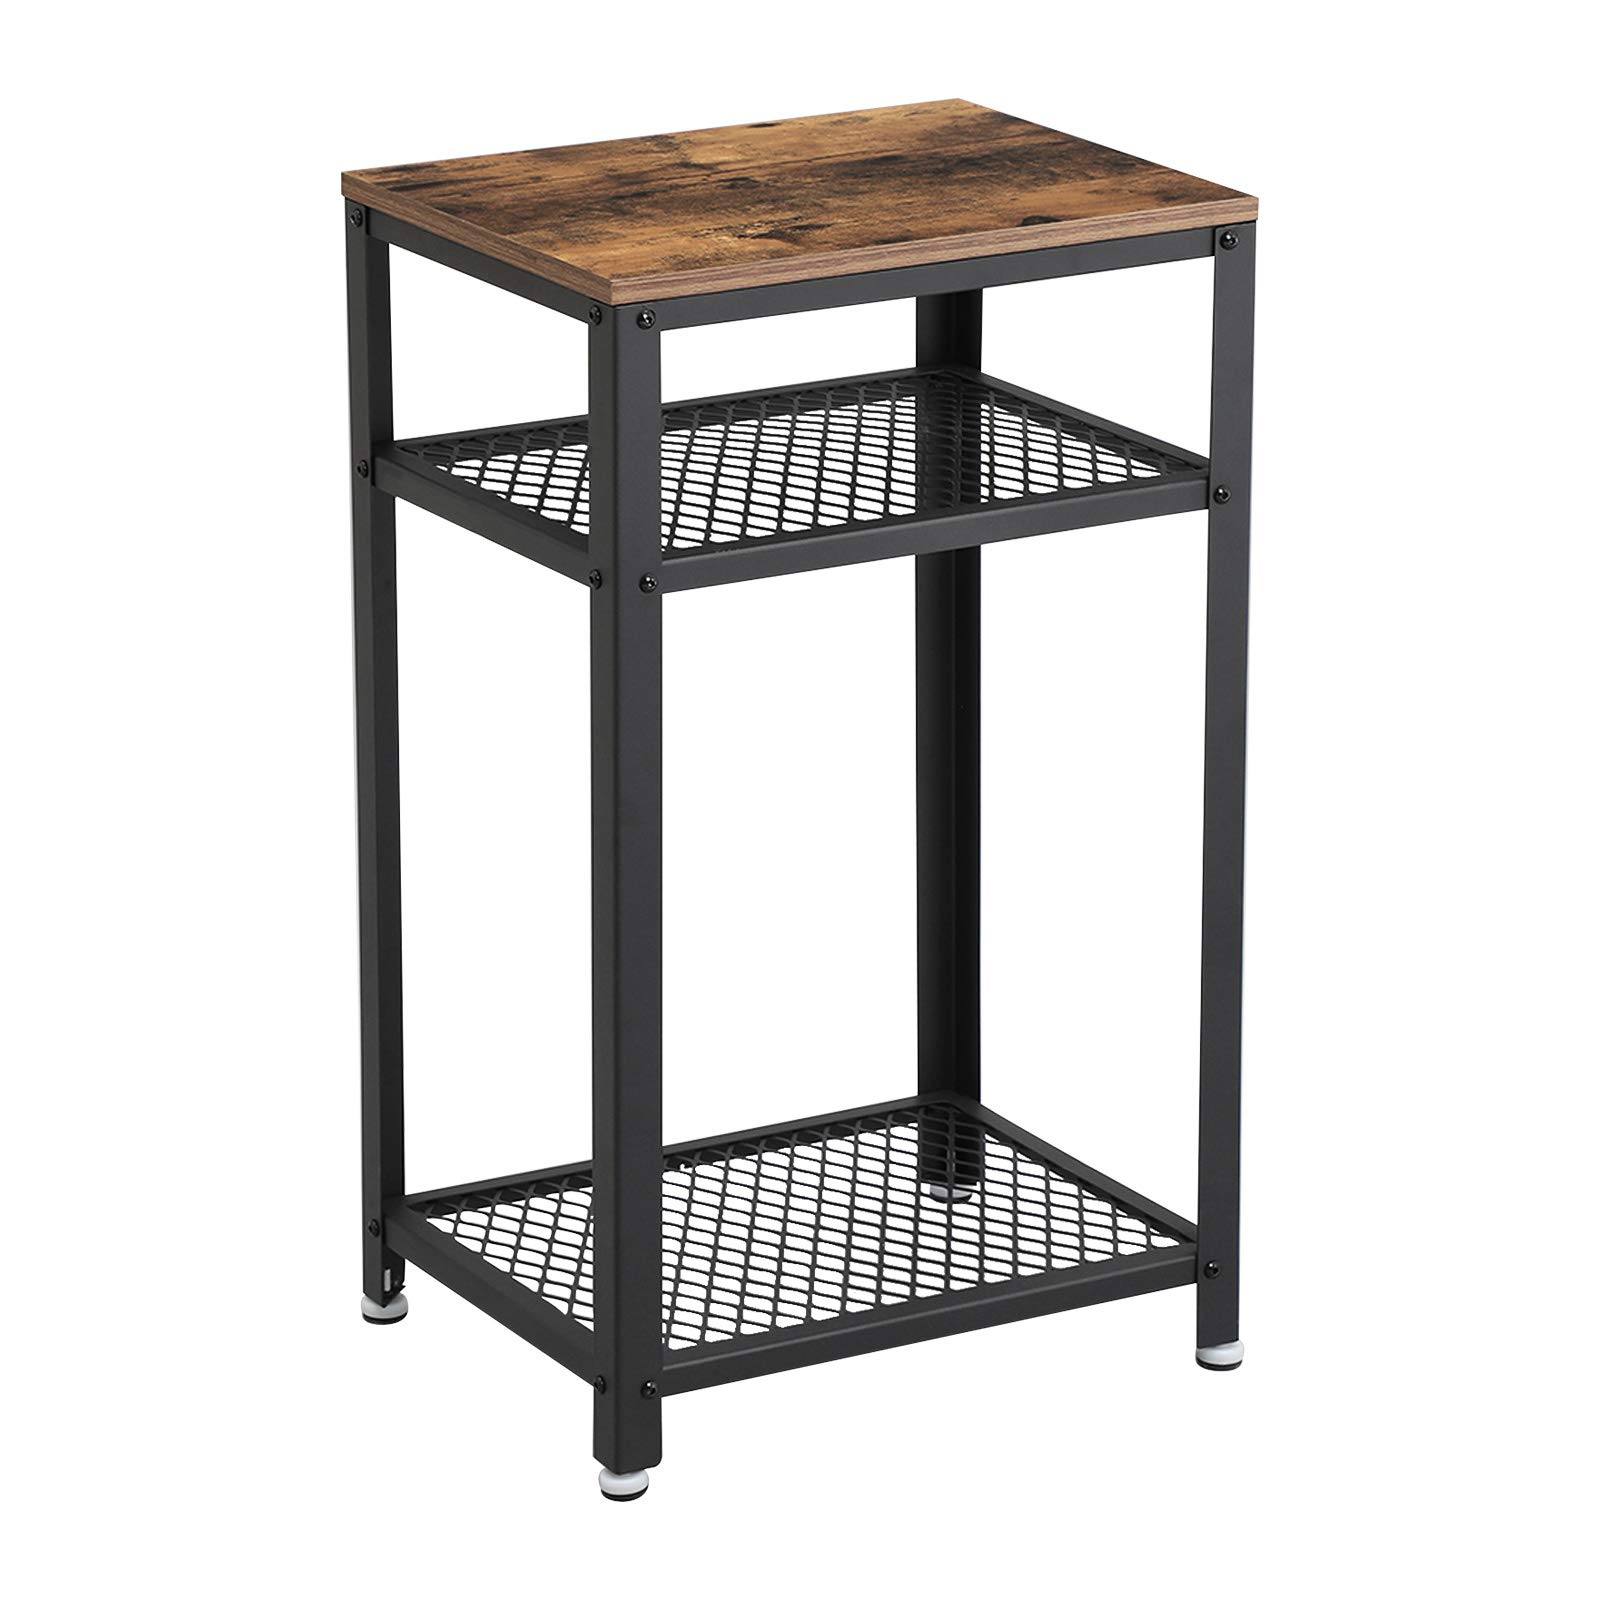 VASAGLE Industrial Side Table, End Telephone Table with 2-Tier Mesh Shelves, for Office Hallway or Living Room, Wood Look Accent Furniture with Metal Frame ULET75BX by VASAGLE